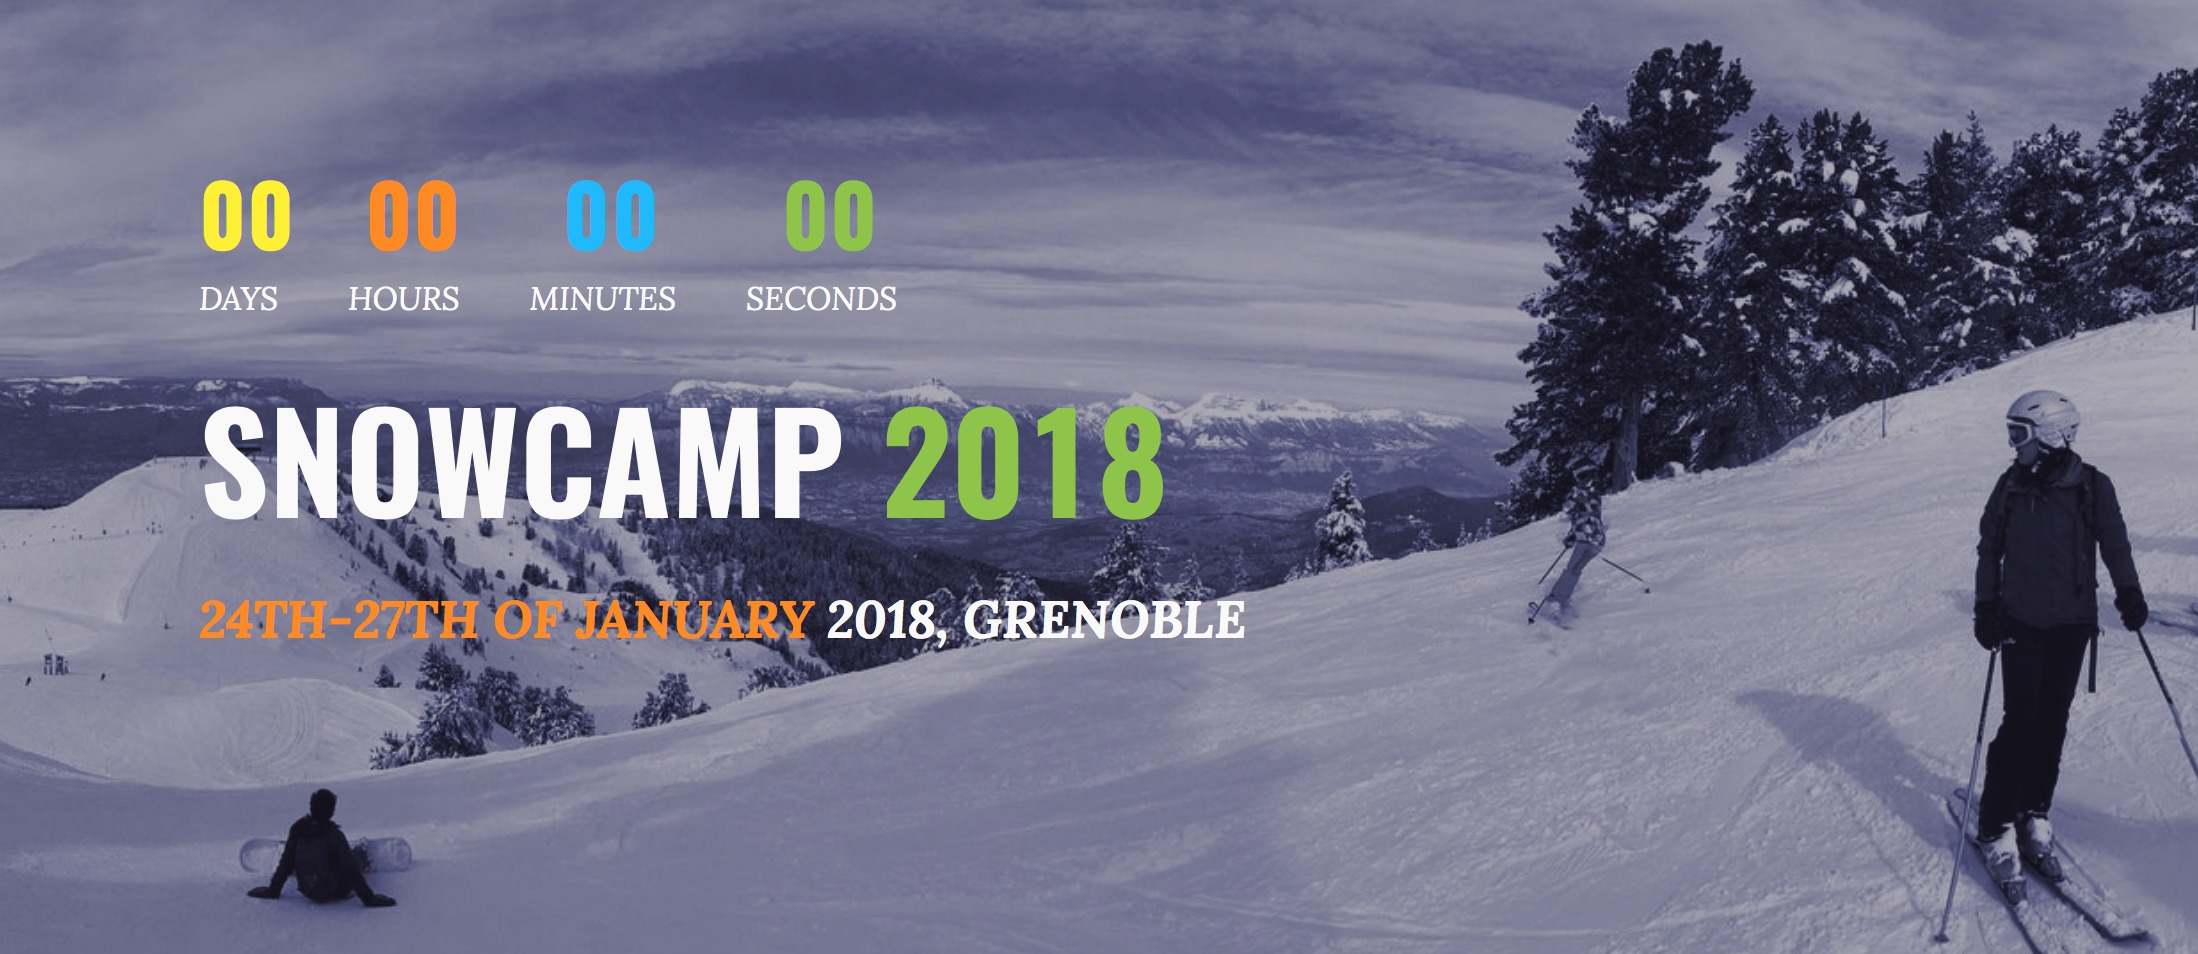 SnowCamp 2018 Trip Report